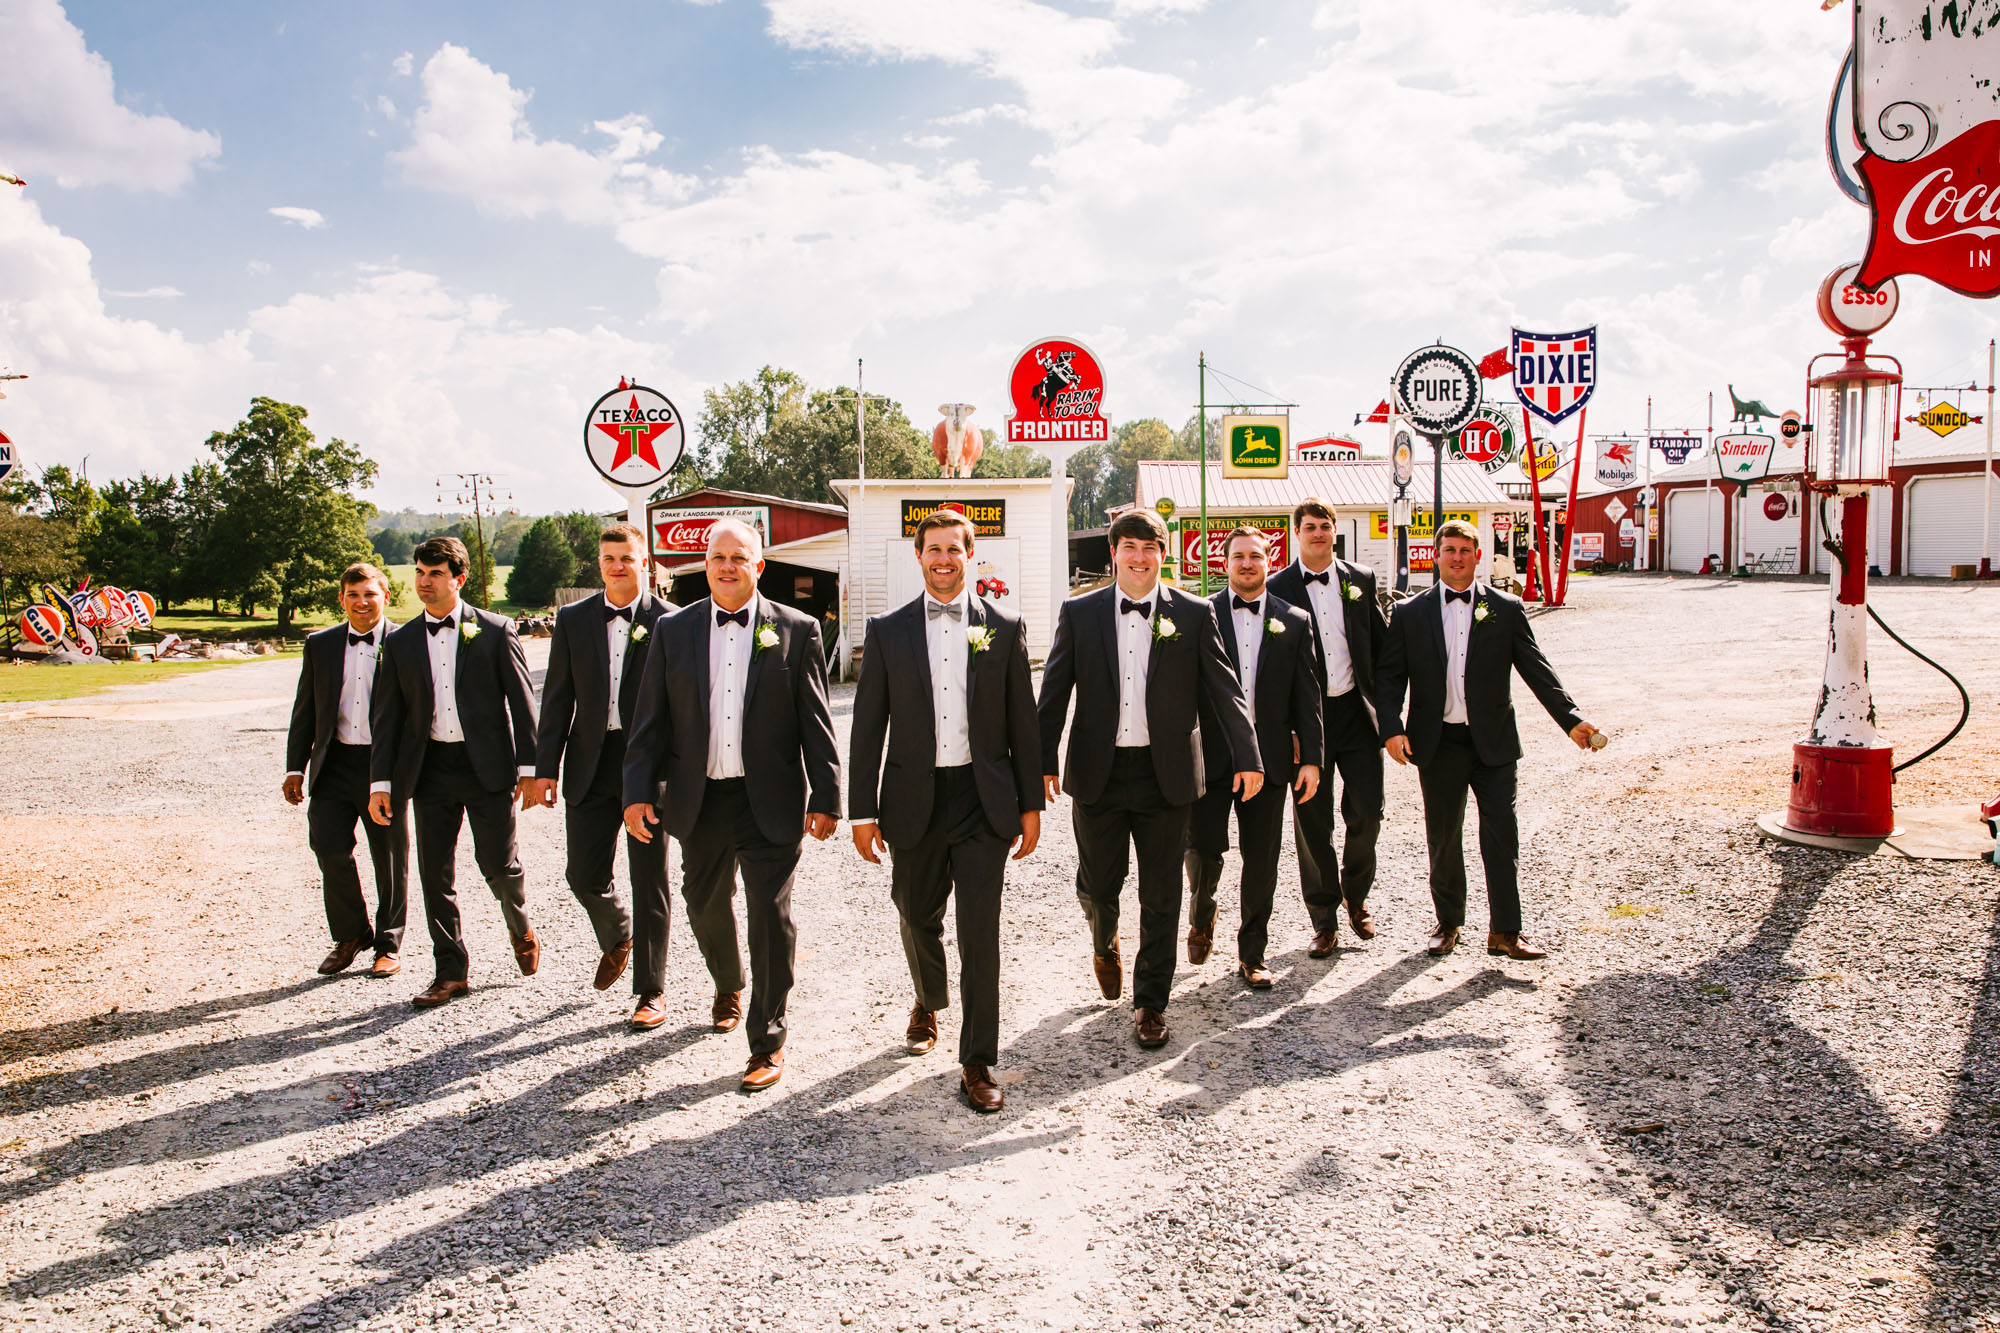 Waynesville, NC Wedding Photography | Groomsmen portrait in Vintage Gas Station Sign Collection